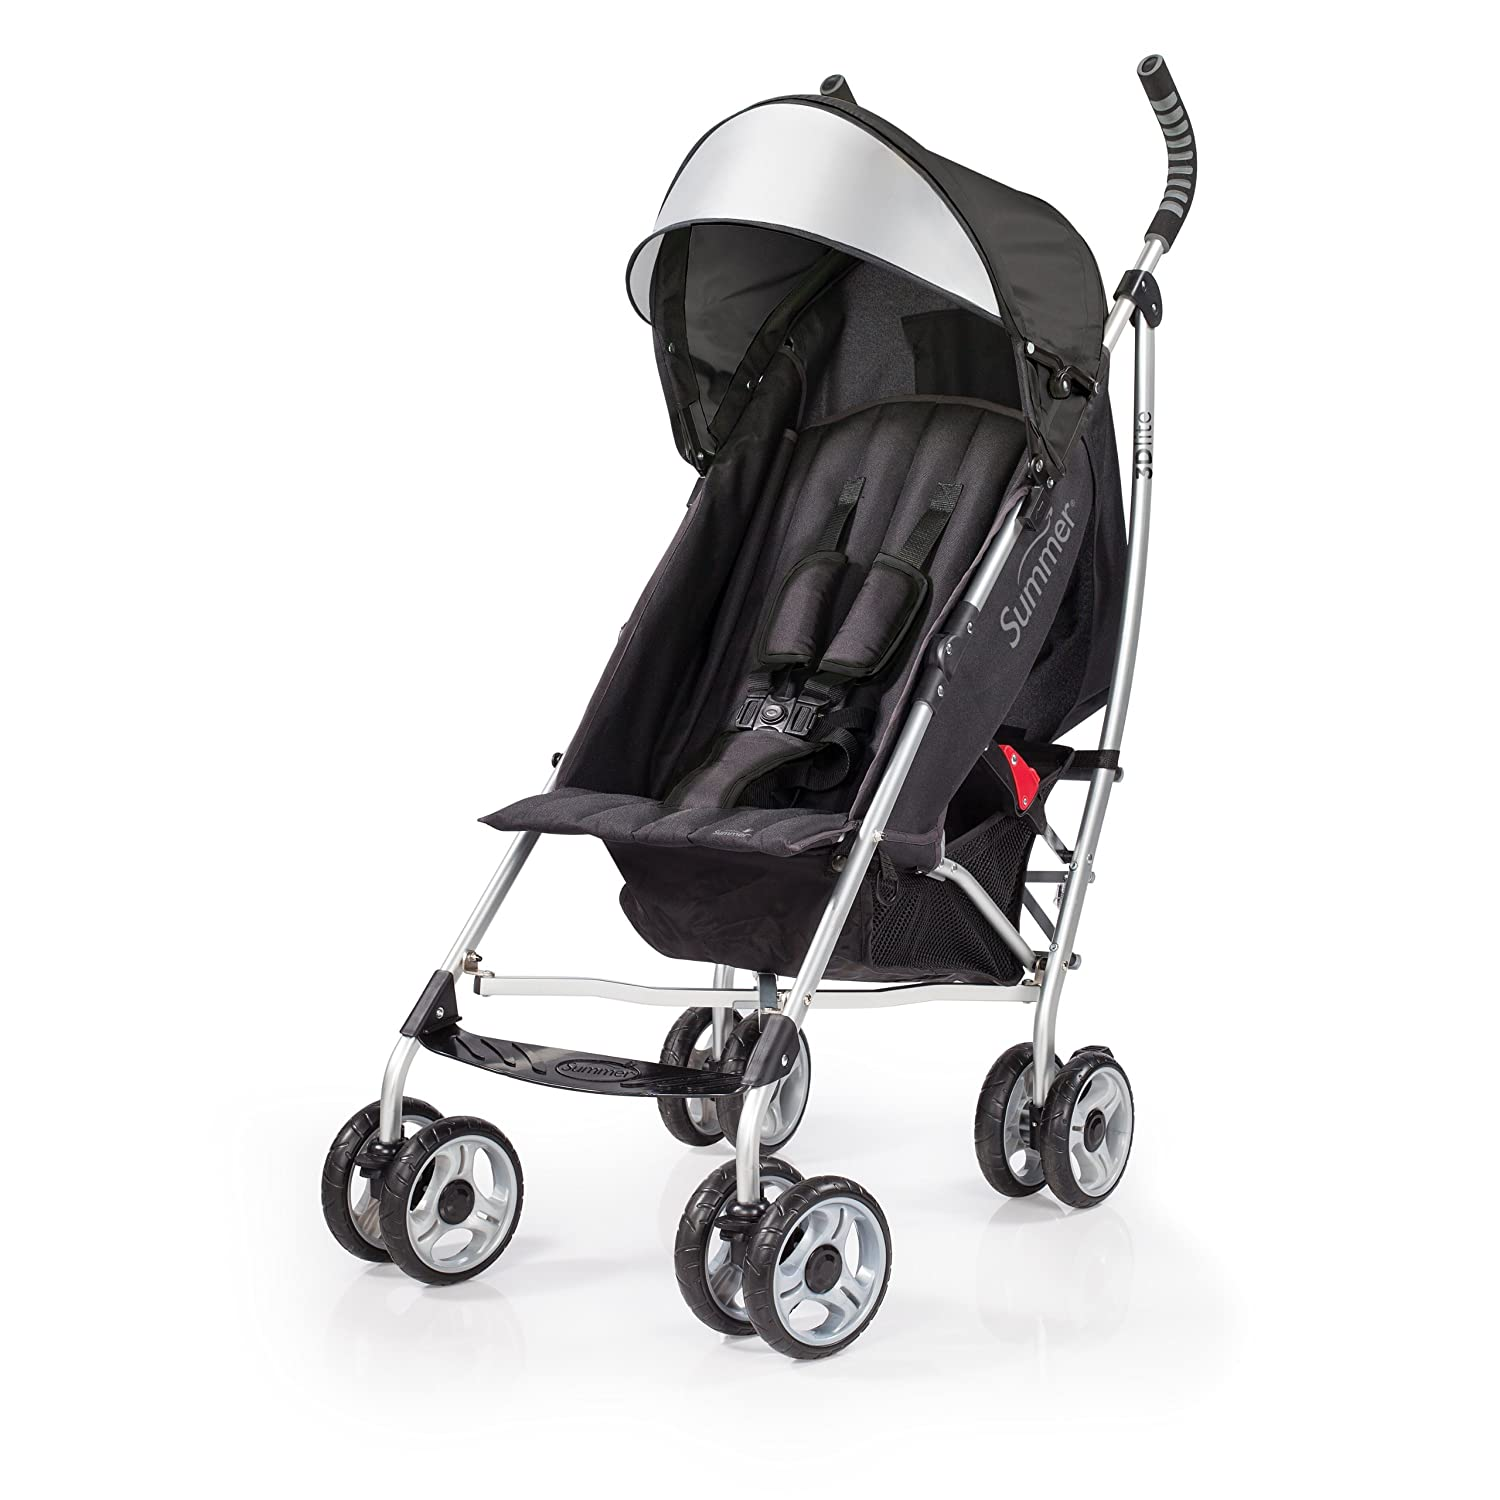 Baby Prams Target 4 5 Out Of 5